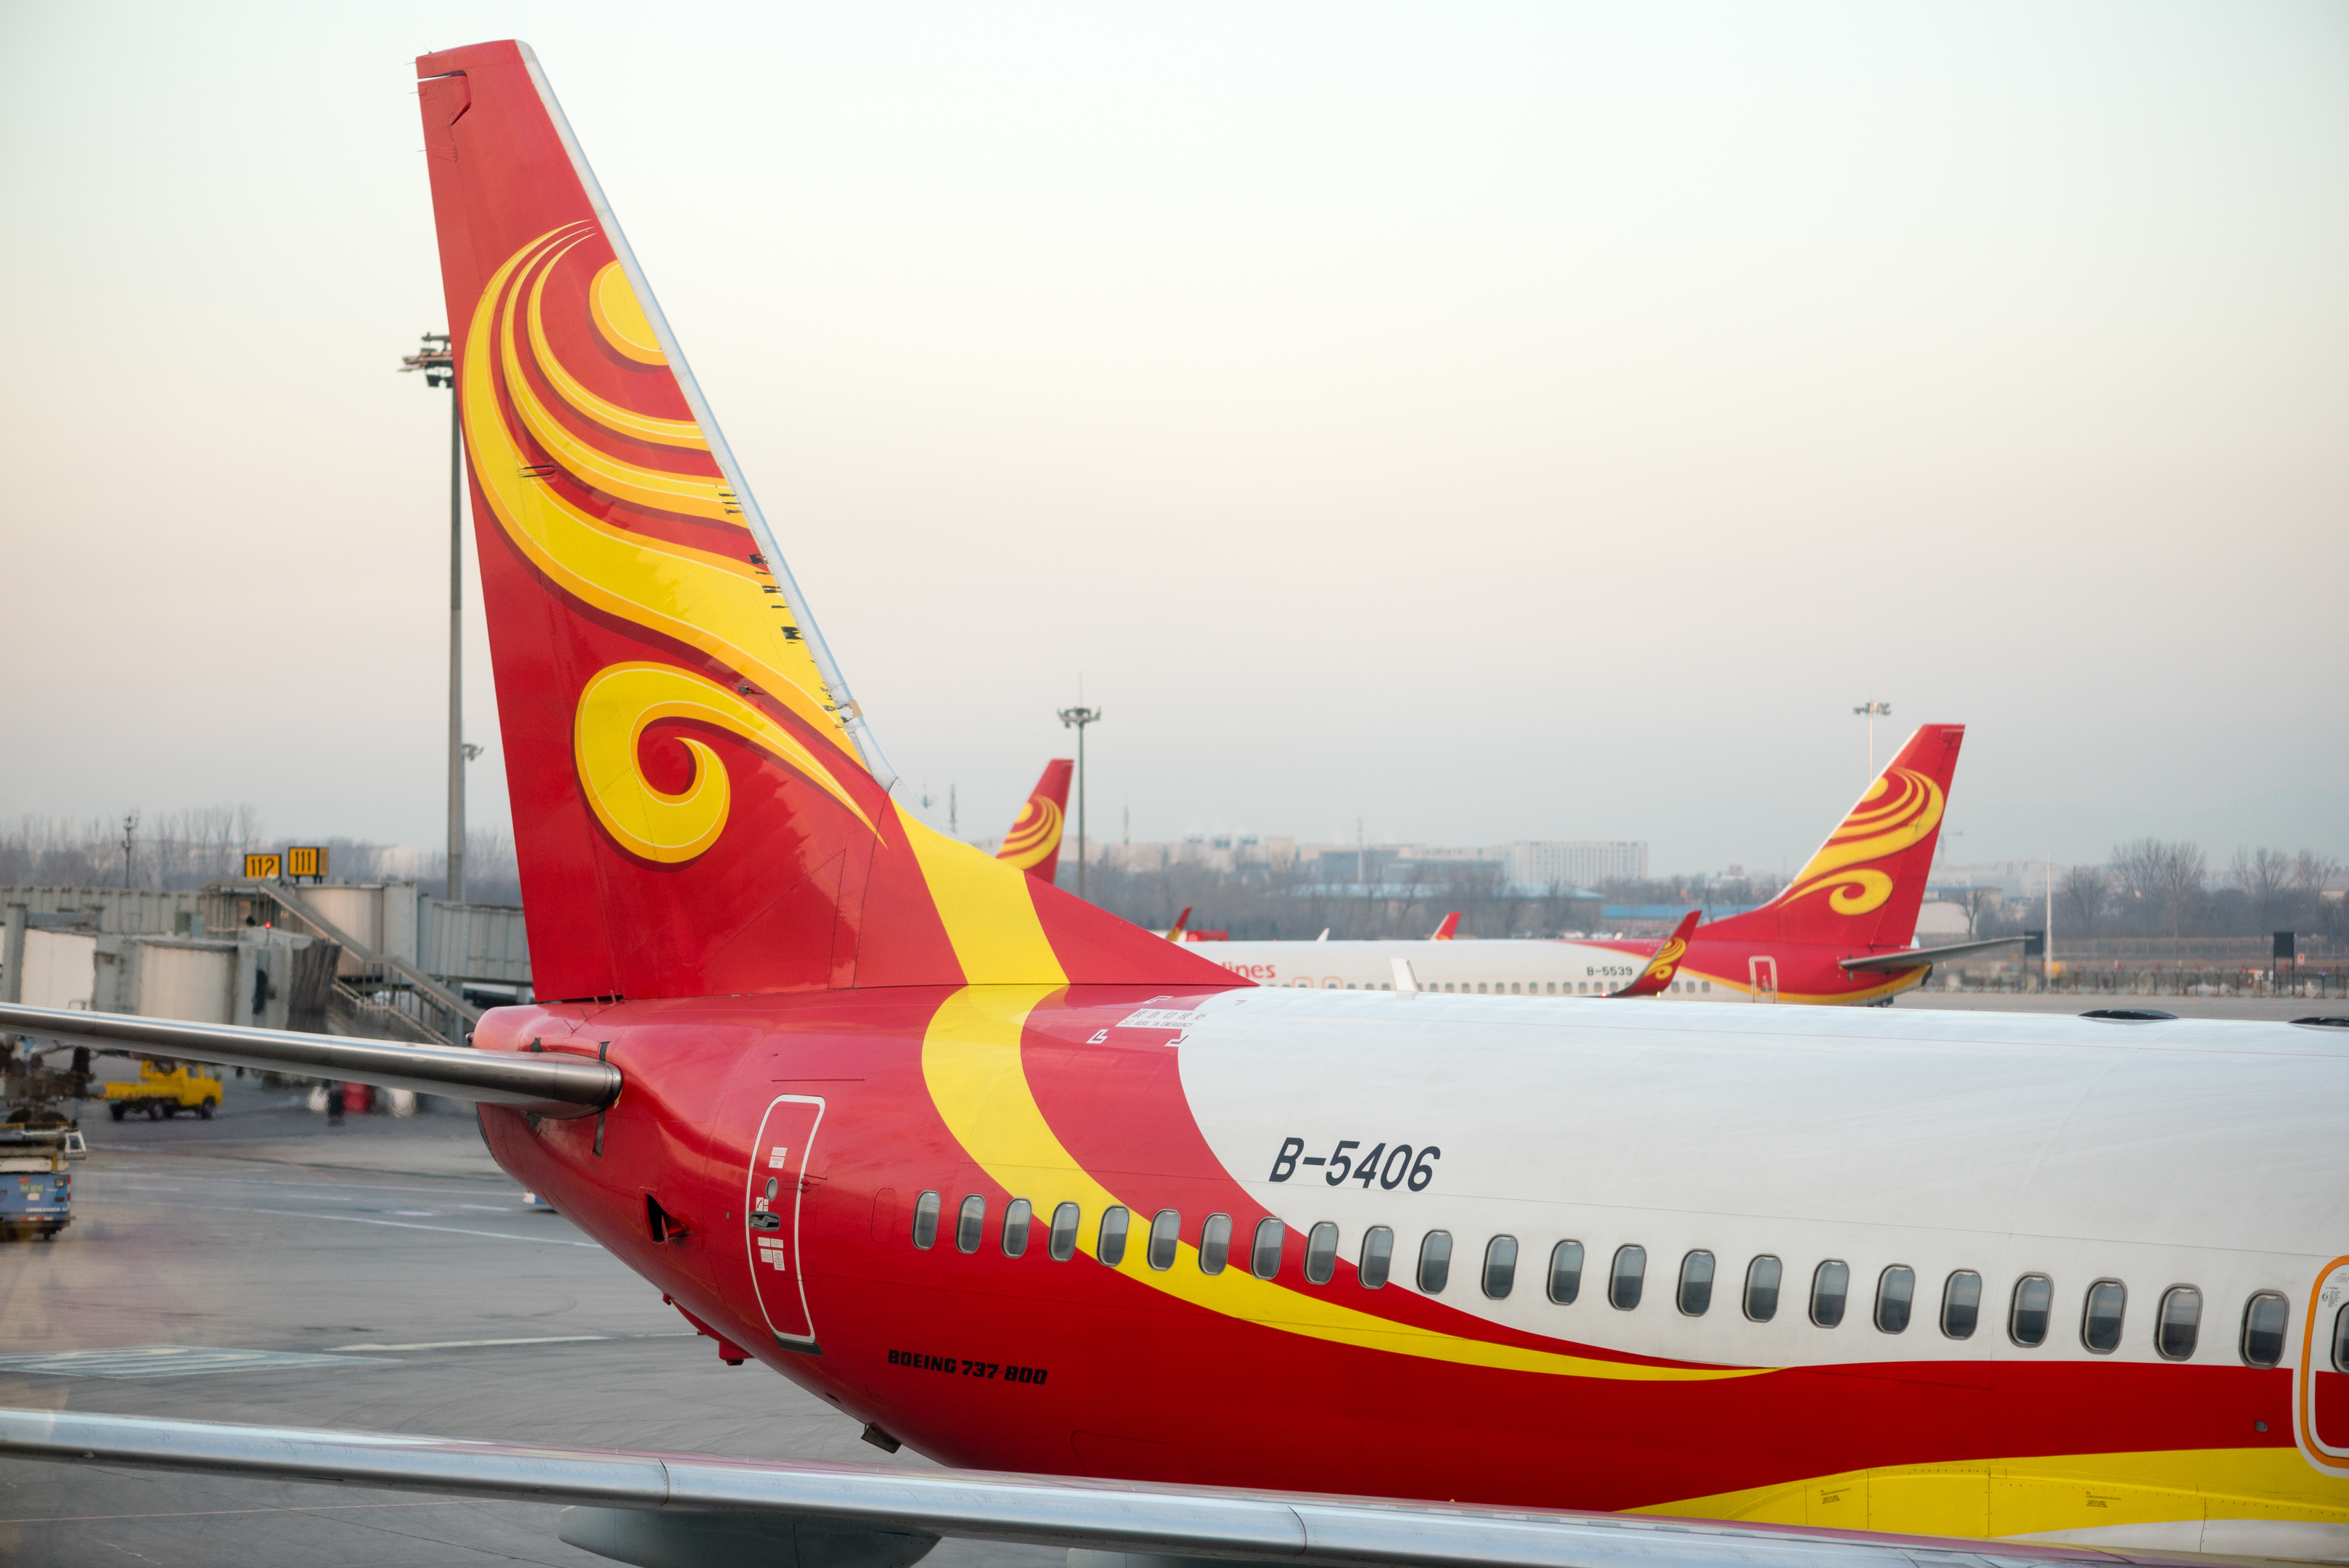 Hainan Airlines will operate the flights (Getty Images)